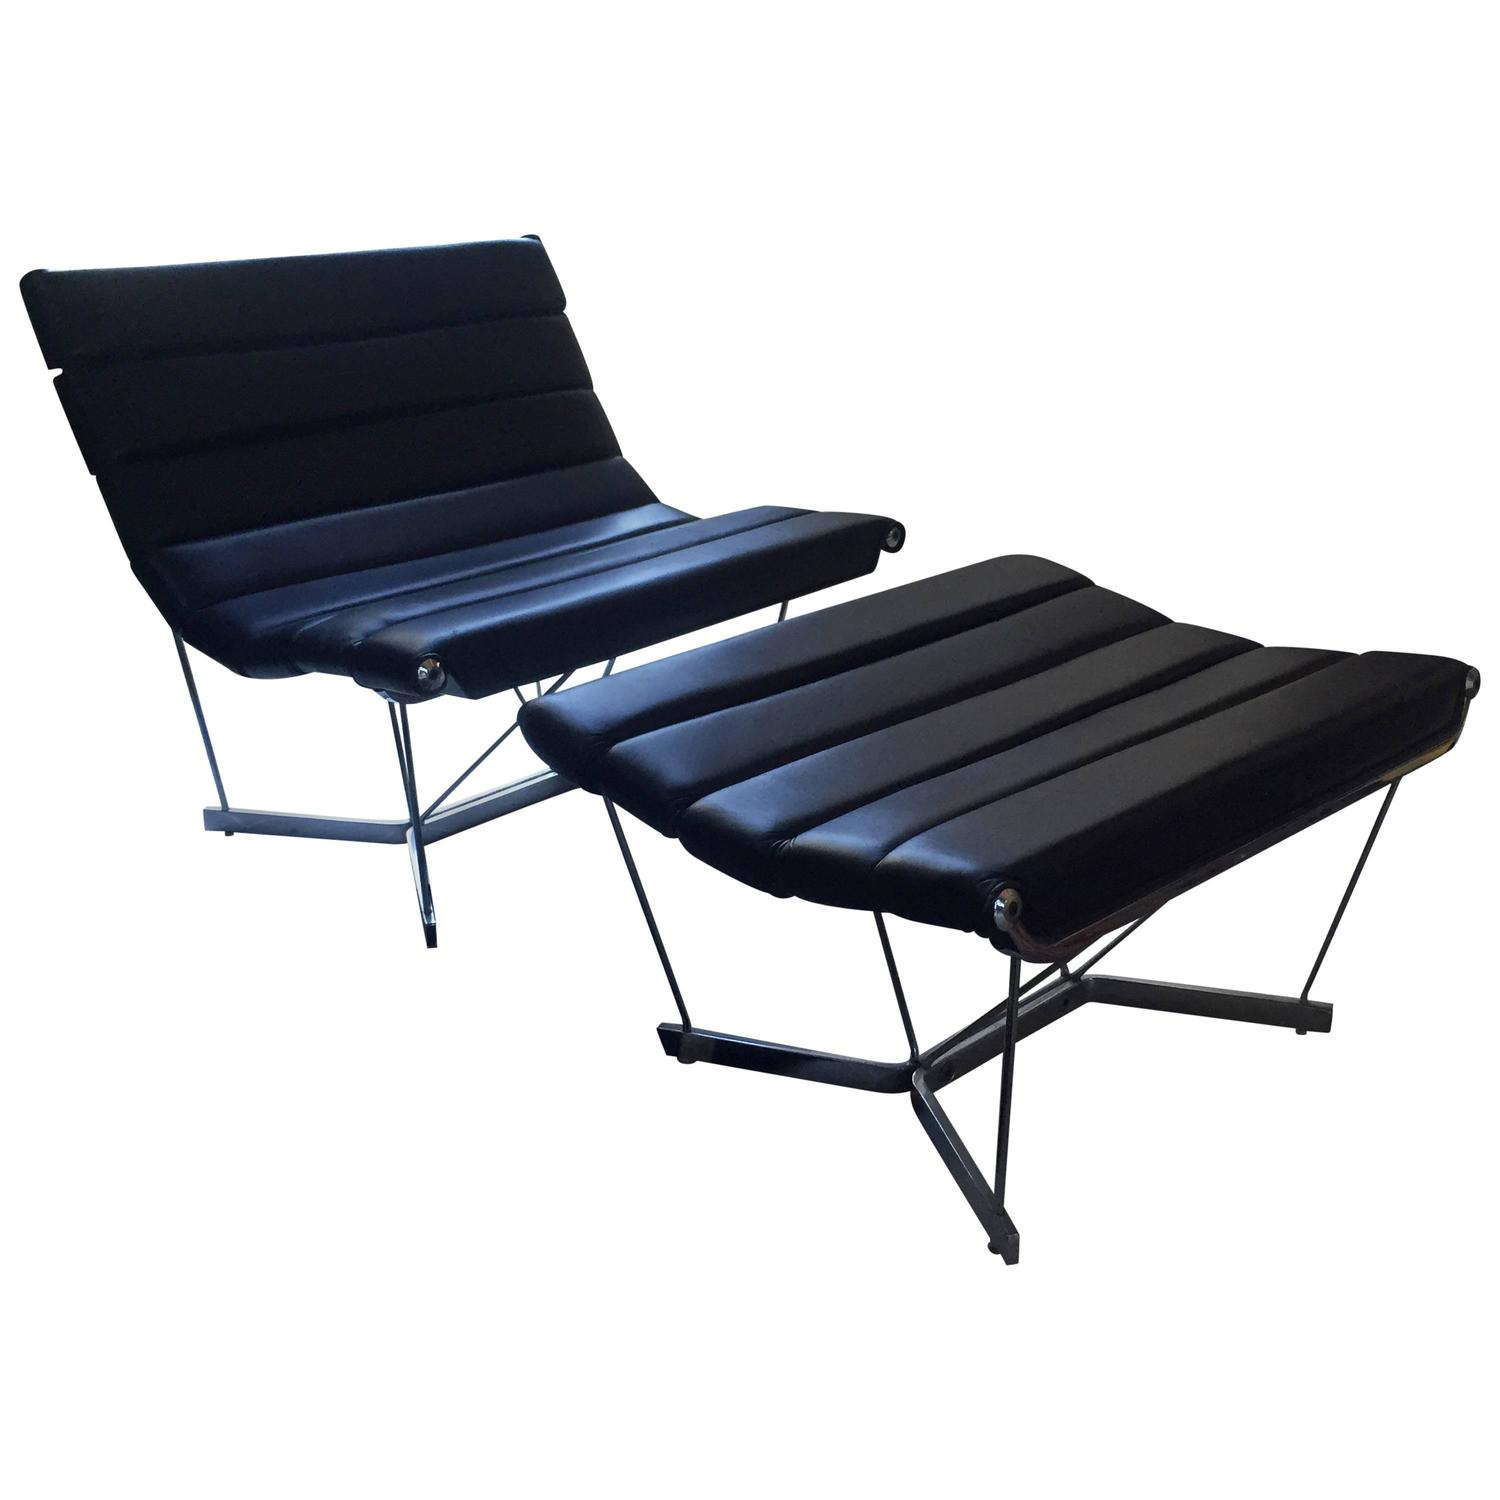 George Nelson 6380 Catenary Chair In Black Leather For Sale At  # Muebles George Nelson